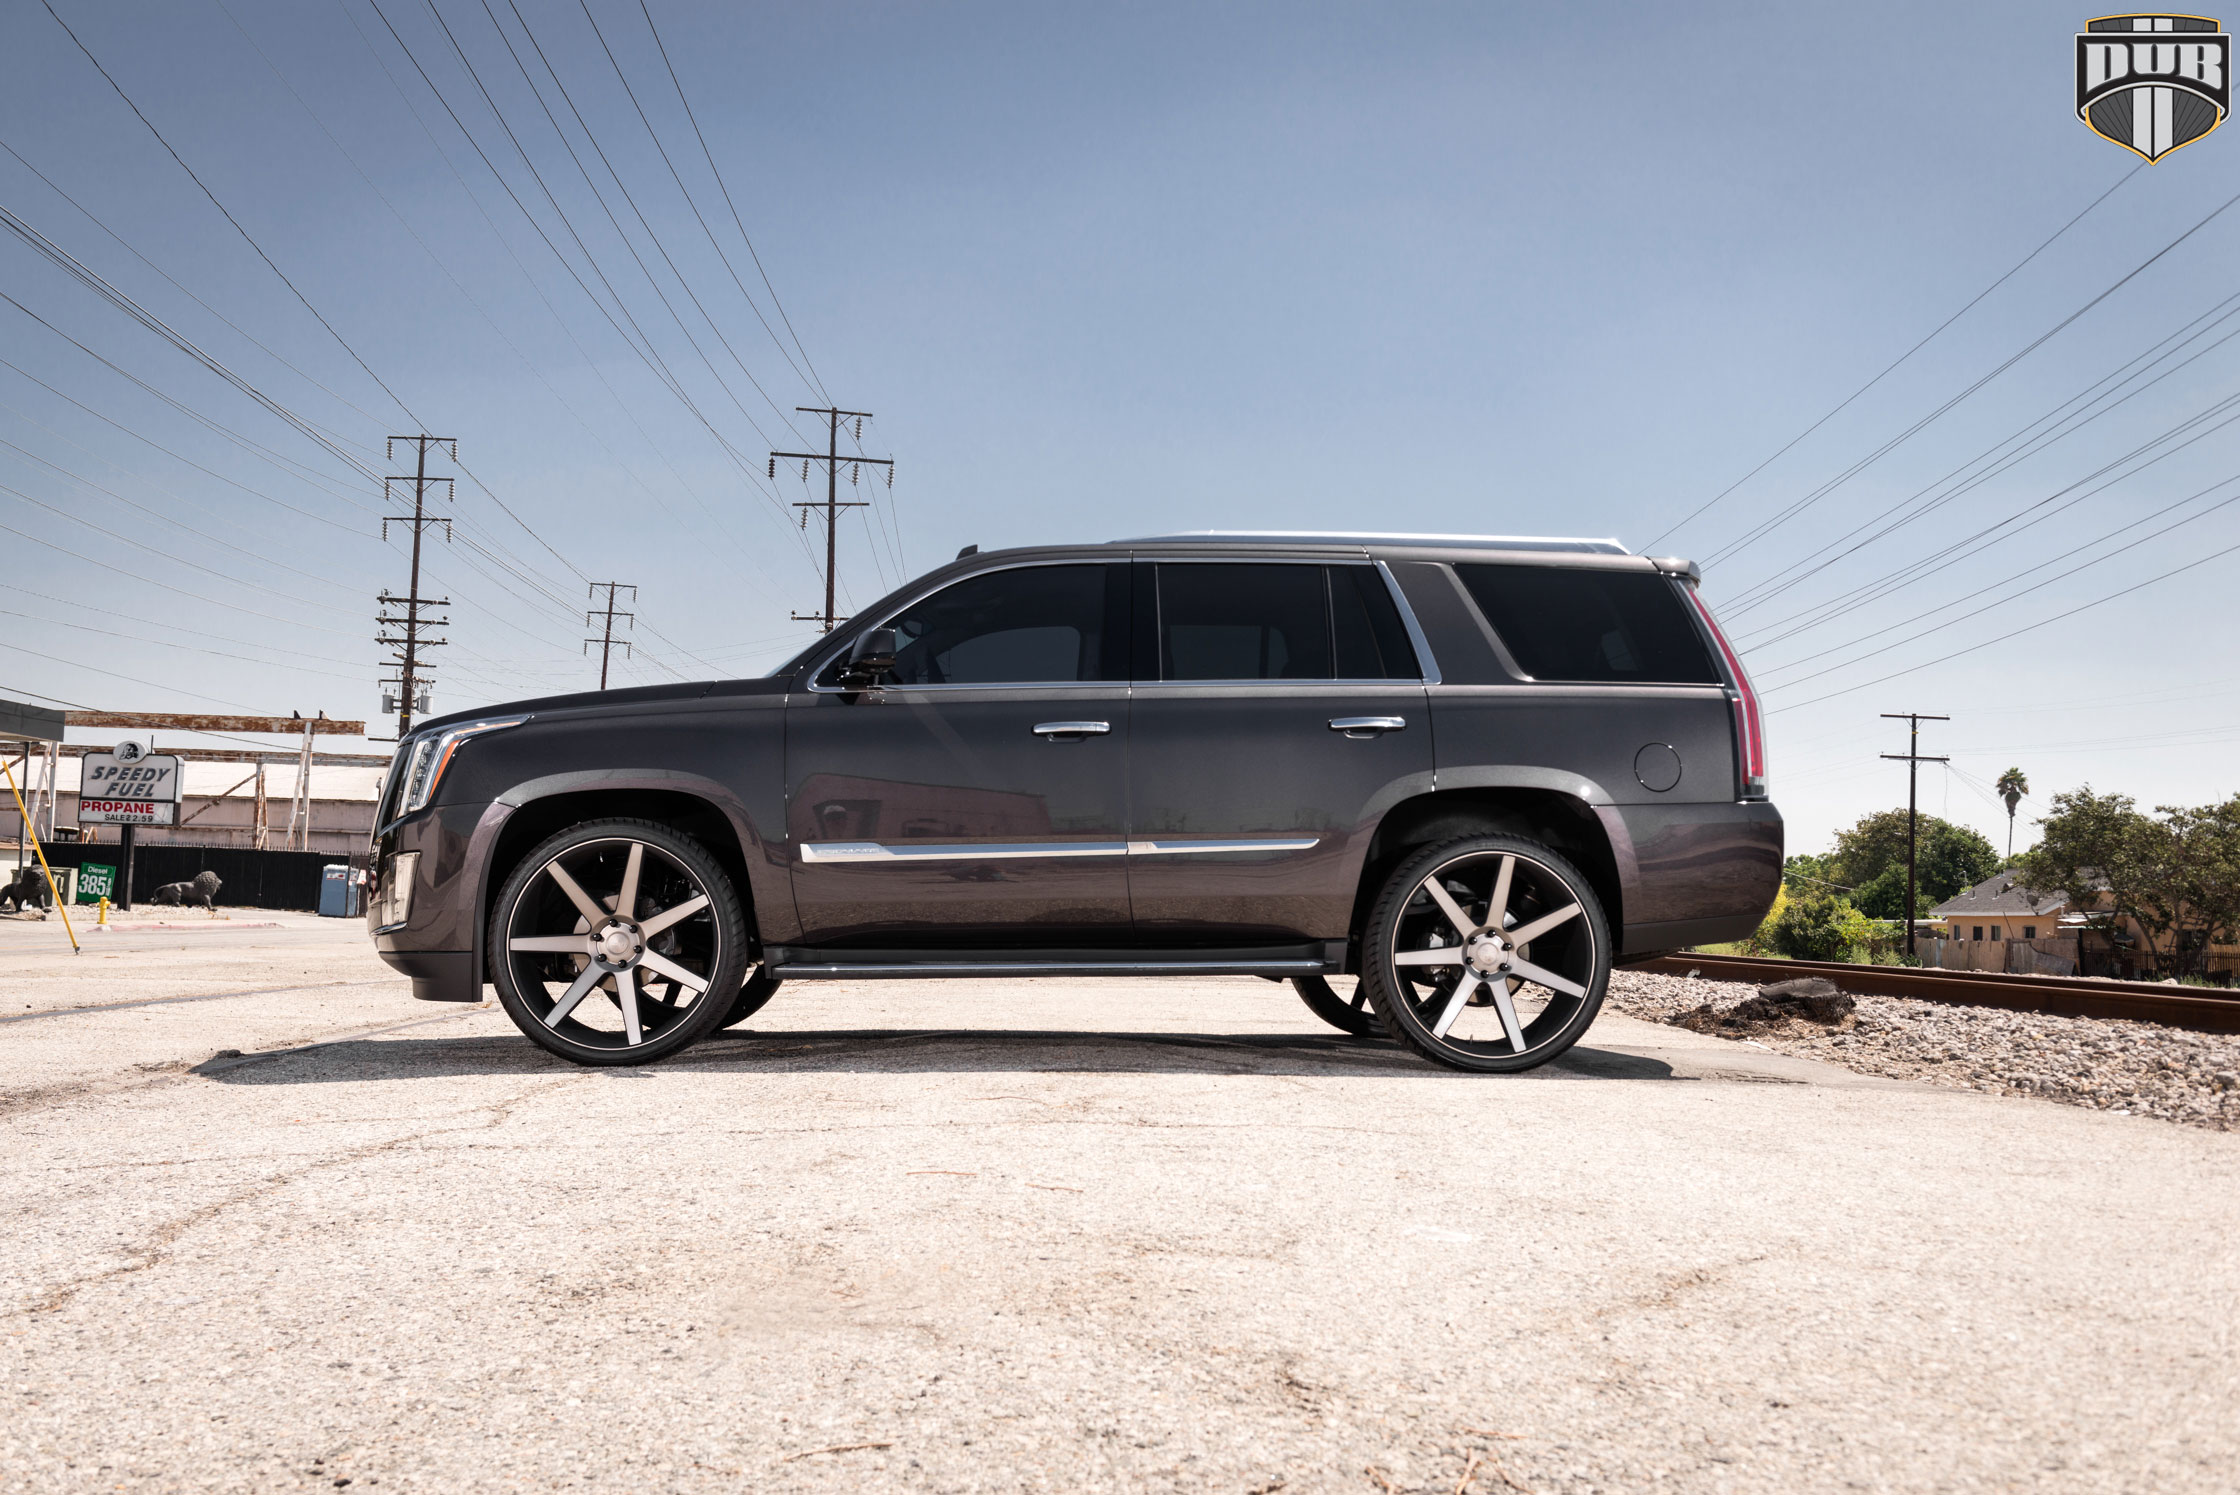 Cadillac Escalade Future - S127 Gallery - MHT Wheels Inc.